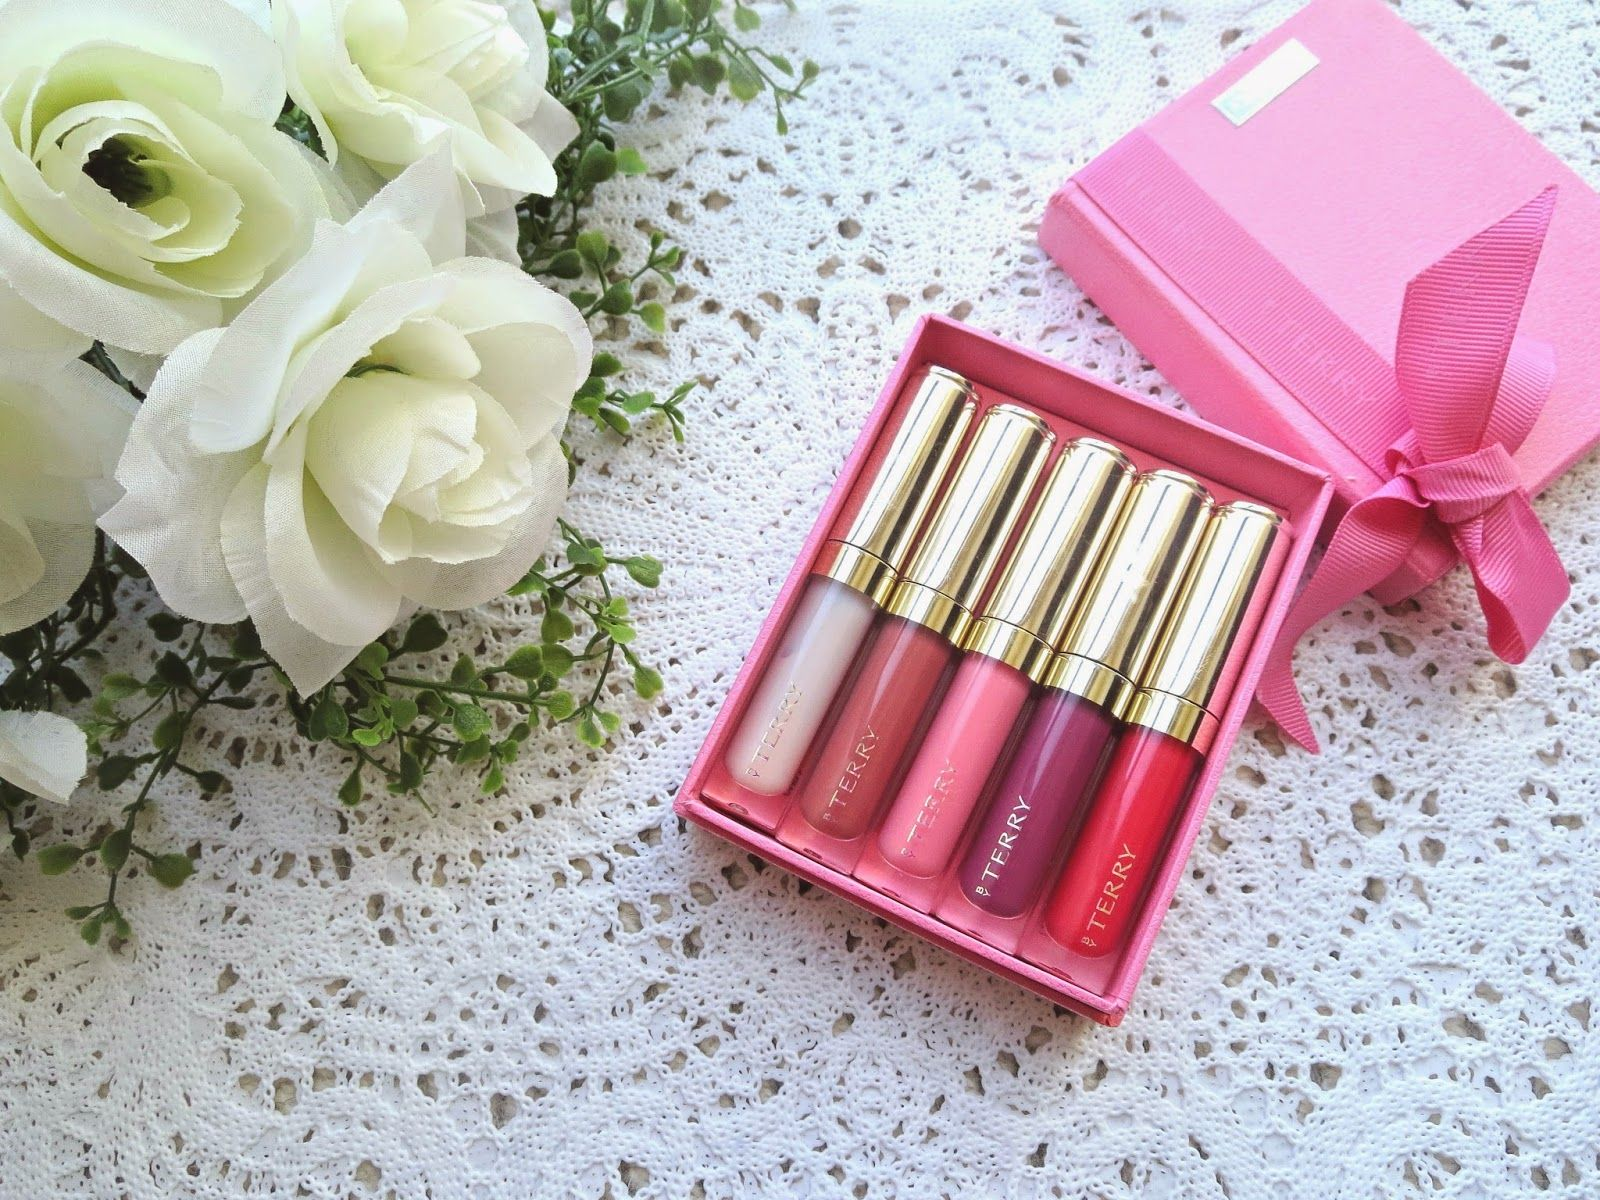 Blossom in Blush By Terry Baume De Rose Lip Gloss Set